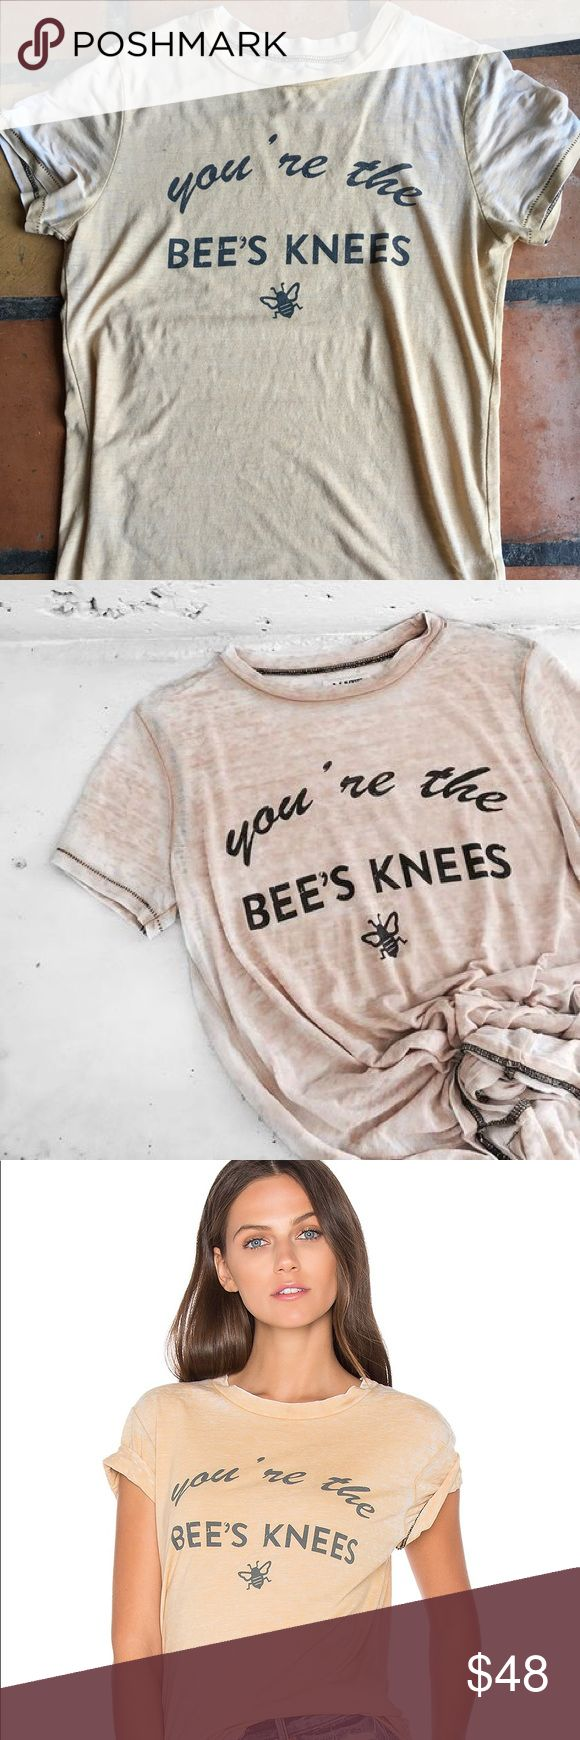 "Mate the Label Bee's Knees Vintage Tee in Small Barely Worn graphic tee from Mate the Label, ""You're the bees knees"". Size is Sm/M. Has an oversized fit. See-through in outer edges of shirt due to its vintage look otherwise no signs of wear. Please see close ups of the fabric for the intentional wear and uneven spots. Looks cute knotted or front tucked. It's a warm mustard color with black stitching. Sold out online!  Label is S/M Length is 26.5"" Pit to pit 17"" Mate the Label Tops Tees…"